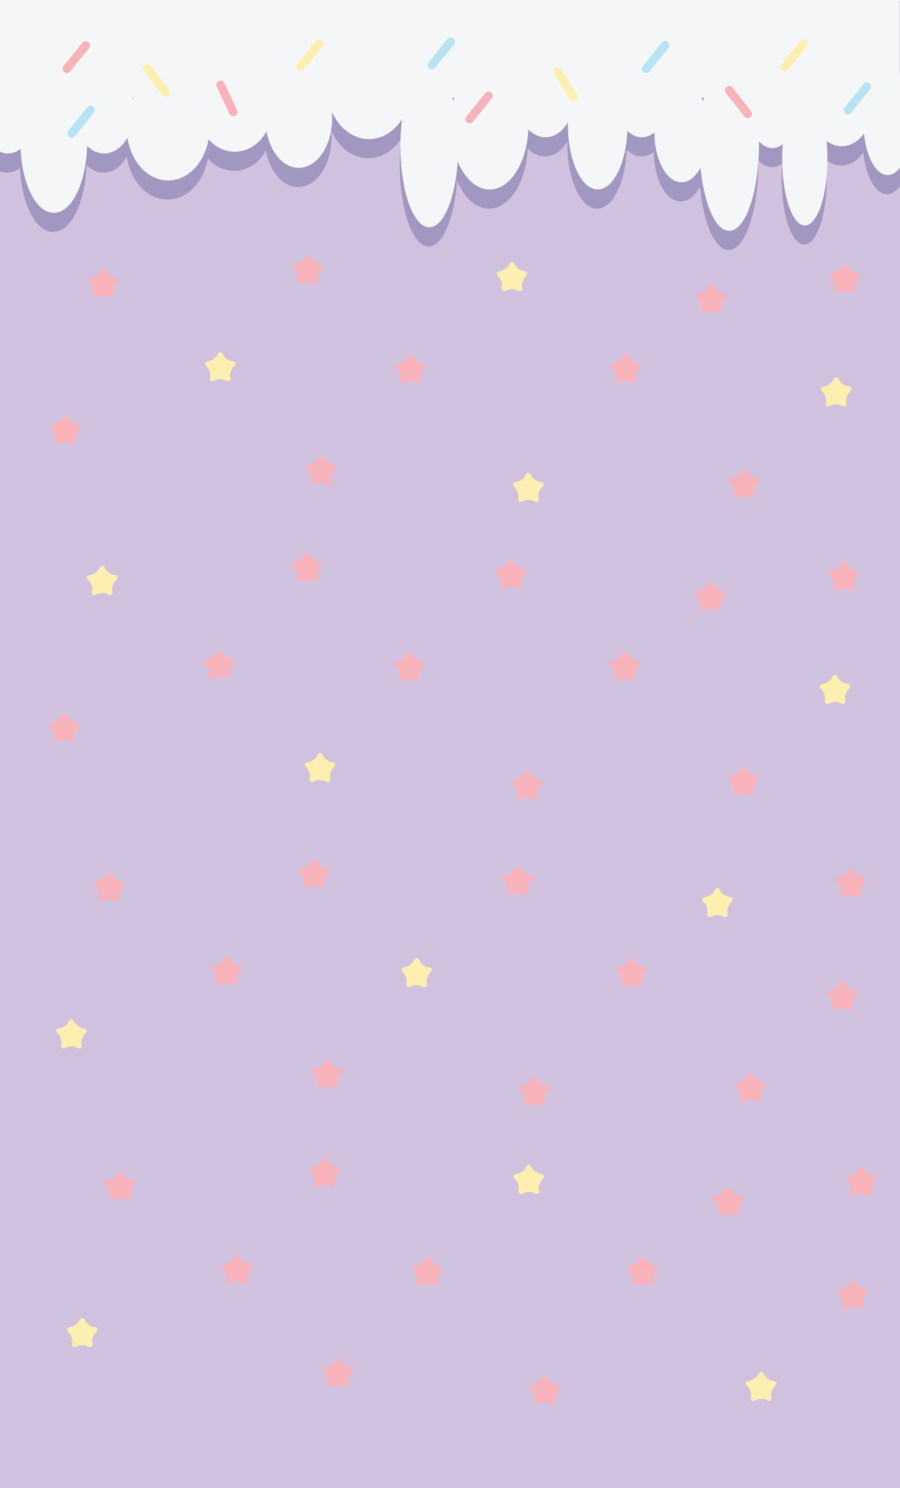 Kawaii Anime, Phone Wallpapers, Pastel, Wallpaper For Phone, Phone  Backgrounds, Cellphone Wallpaper, Melted Crayons, Color Palettes